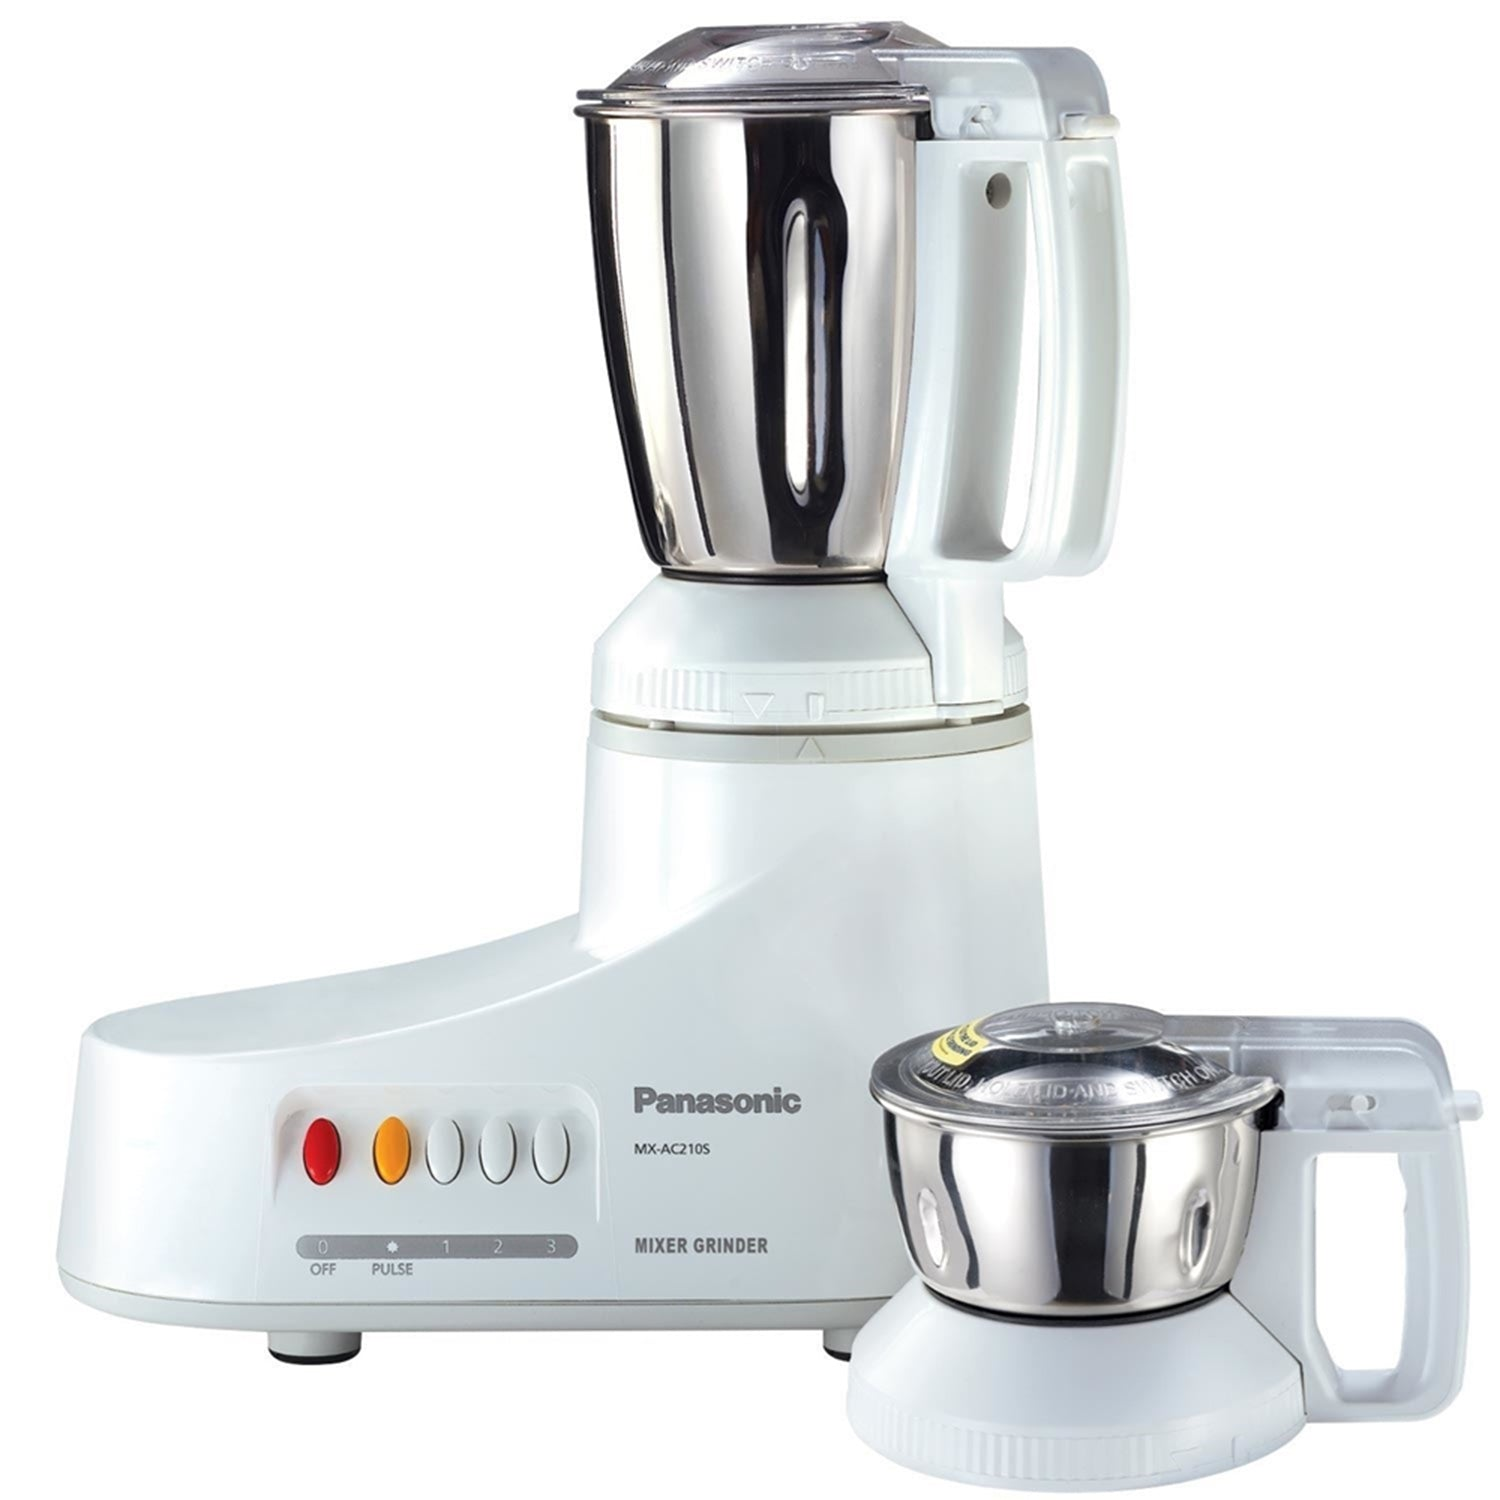 1000W 4 in 1 Mixer Grinder